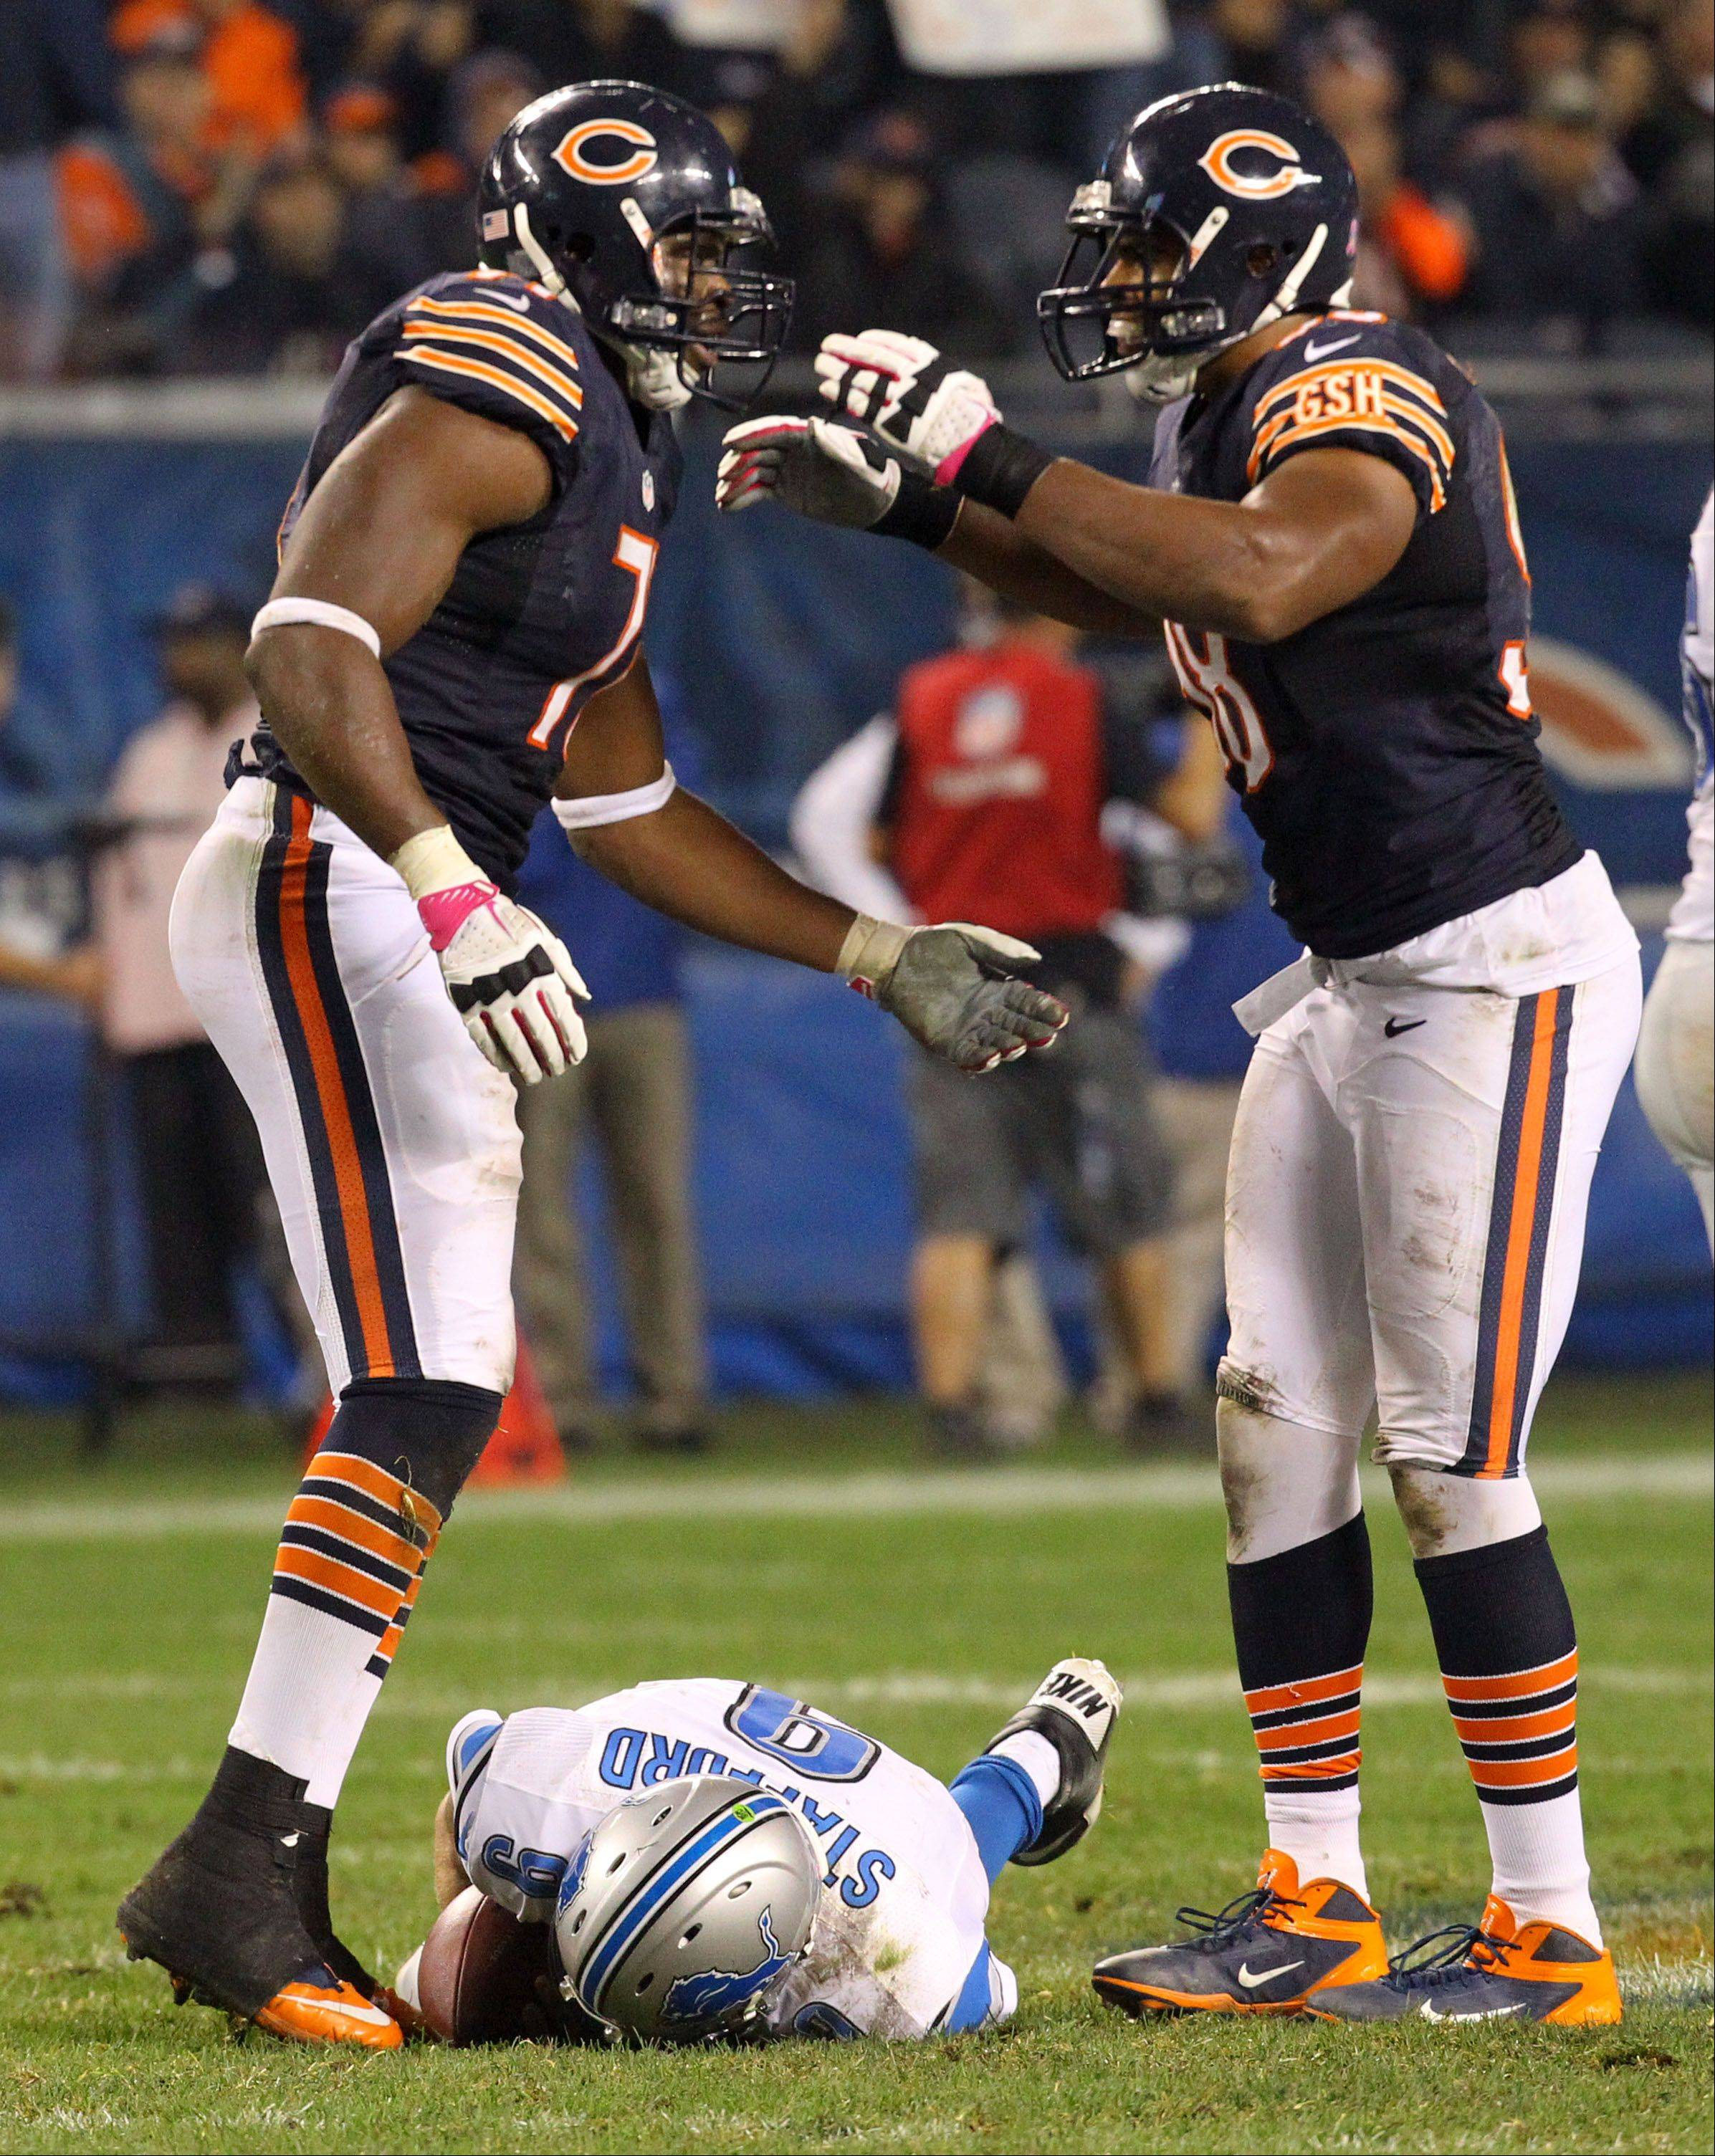 Chicago Bears defensive end Israel Idonije and Chicago Bears defensive end Corey Wootton celebrate after sacking Detroit Lions quarterback Matthew Stafford.